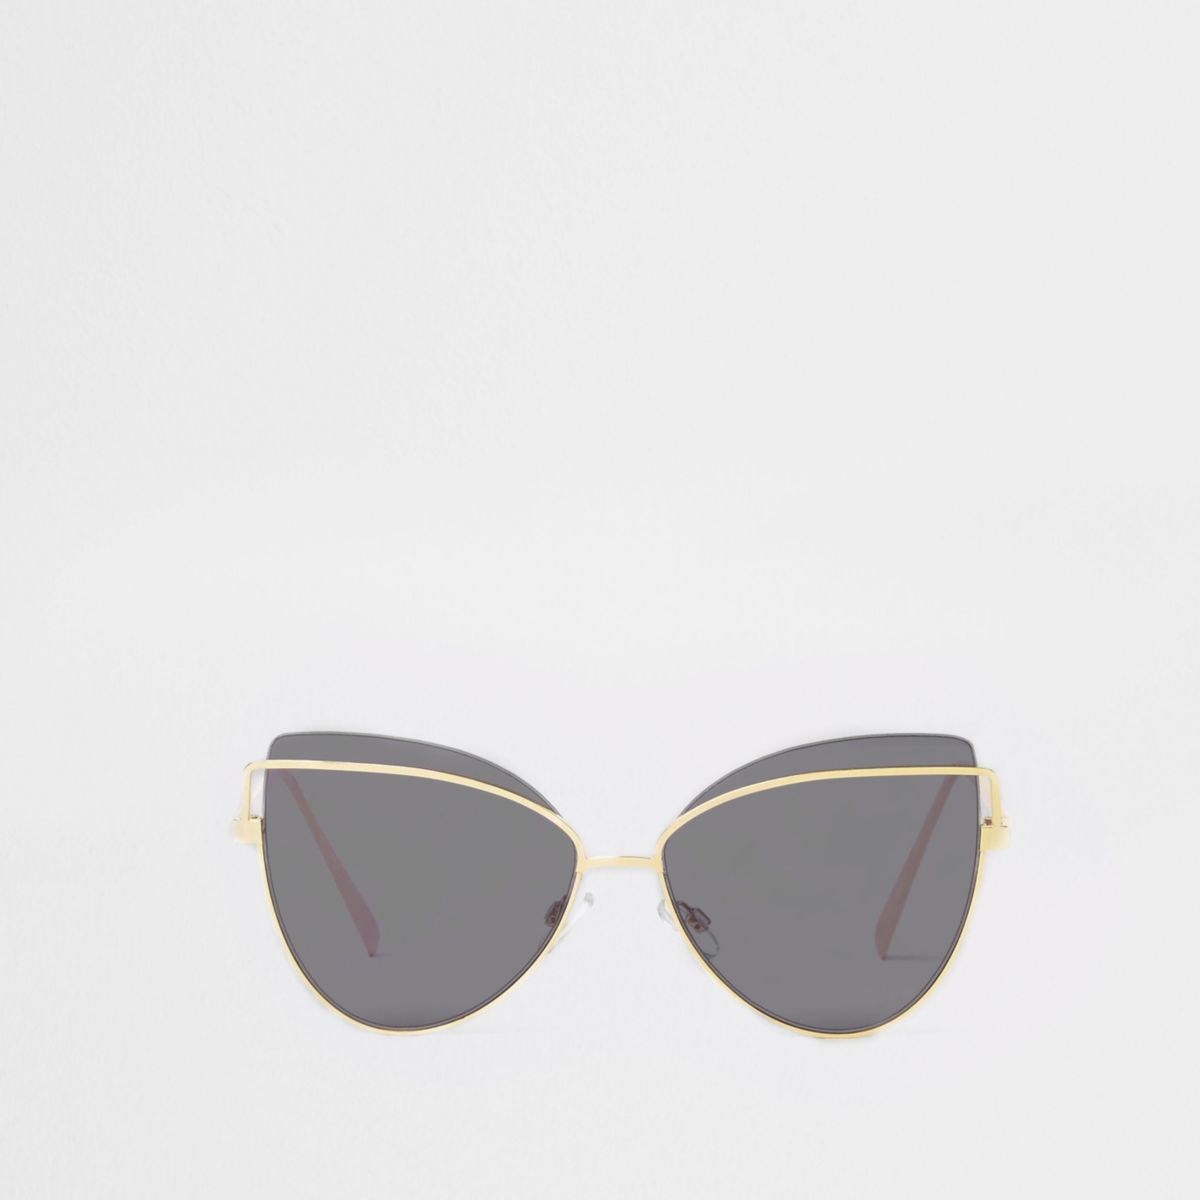 Gold tone black lens cat eye sunglasses